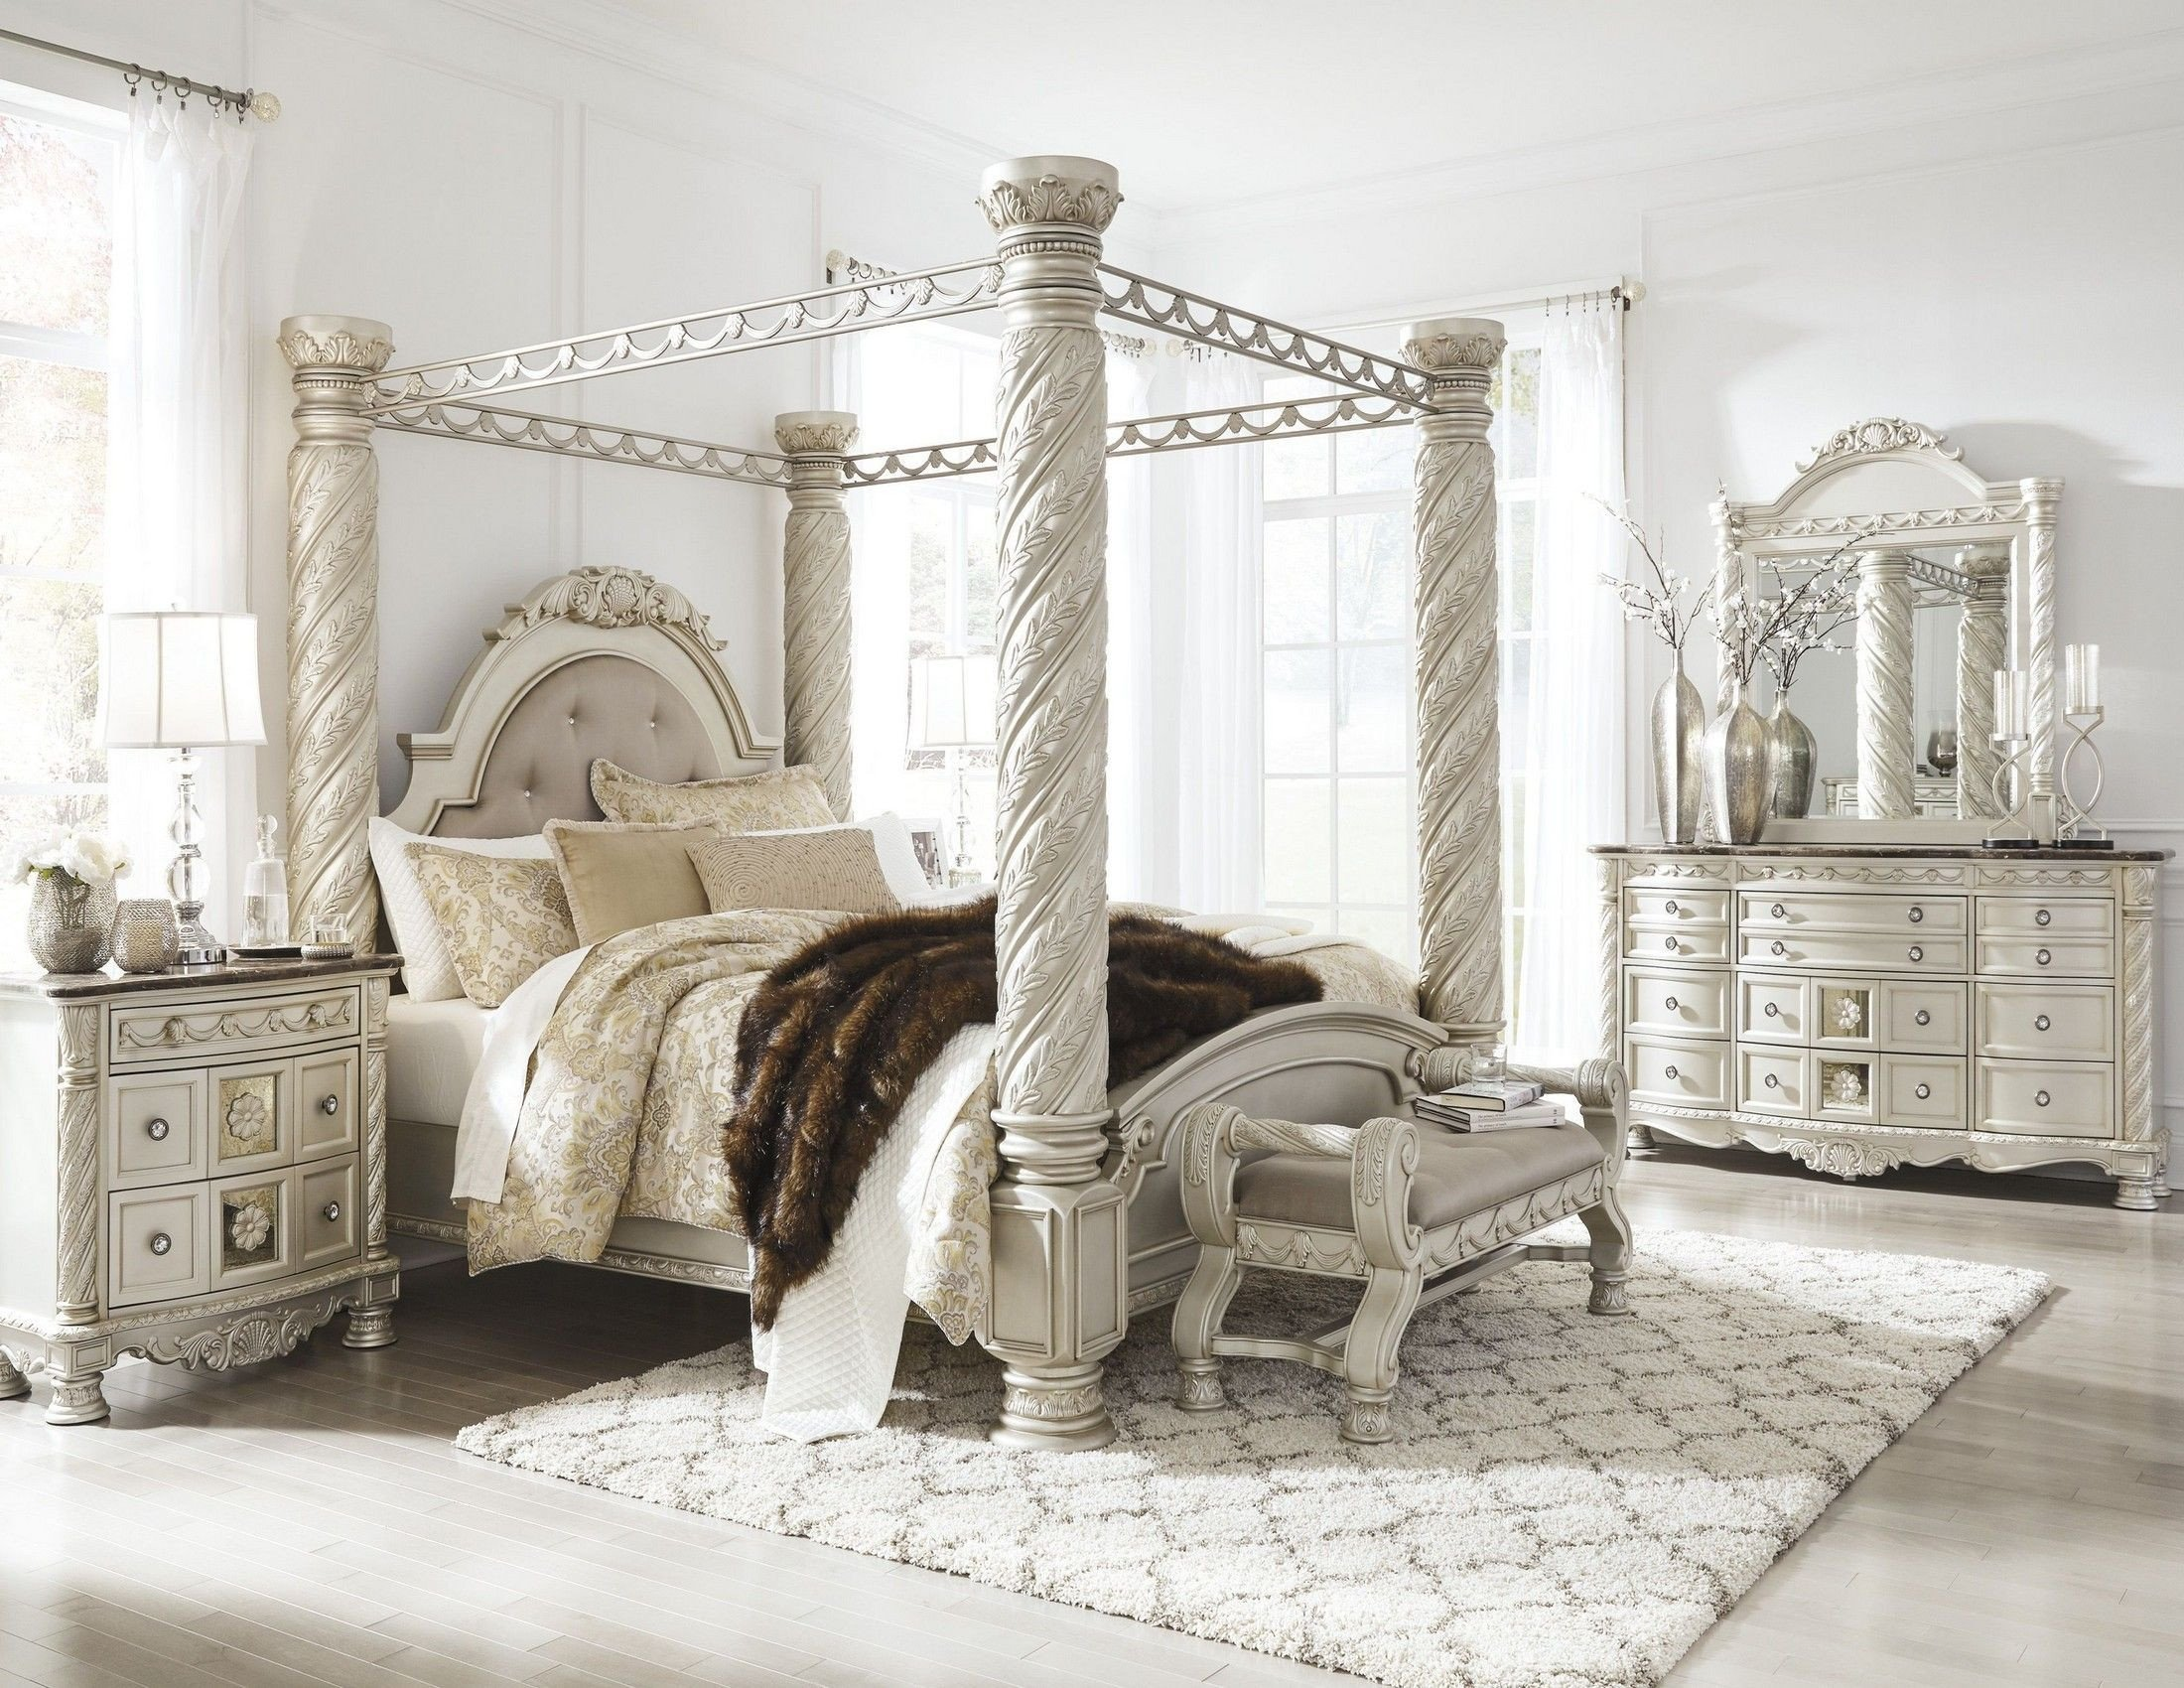 Farmers Furniture Bedroom Set Awesome Cassimore north Shore Pearl Silver Upholstered Poster Canopy